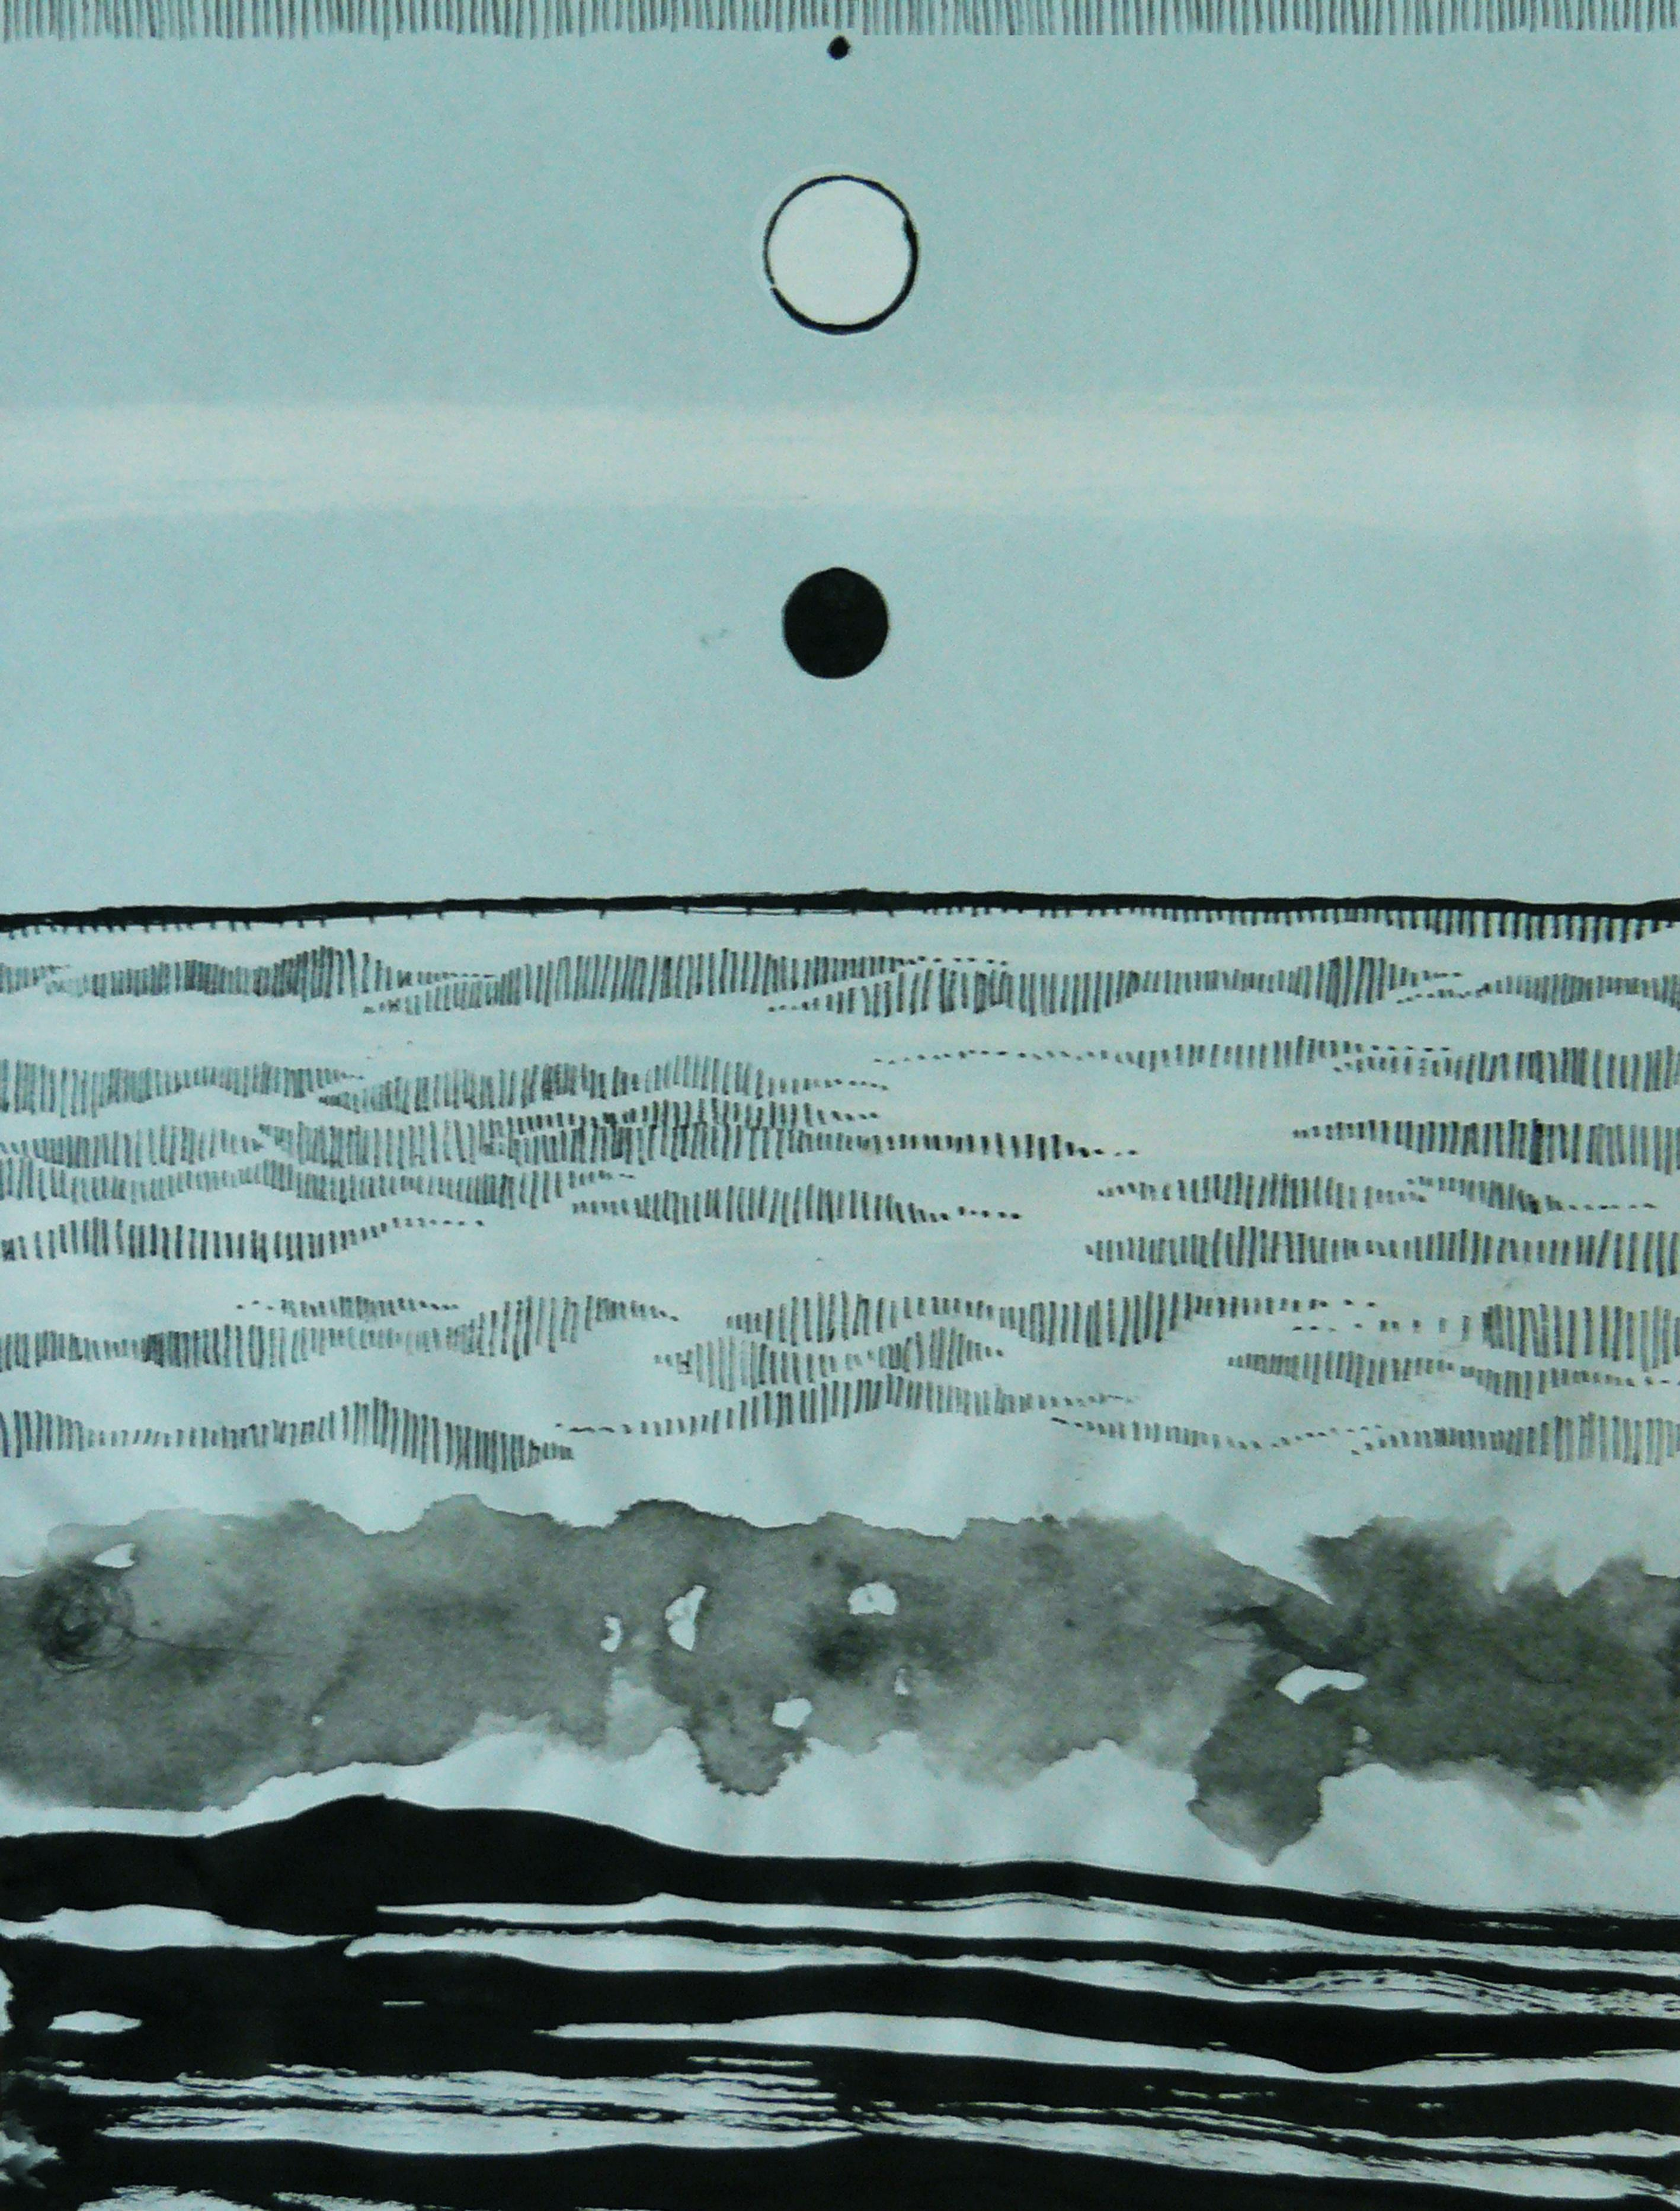 Untitled - Abstract Contemporary Landscape, Seascape Painting